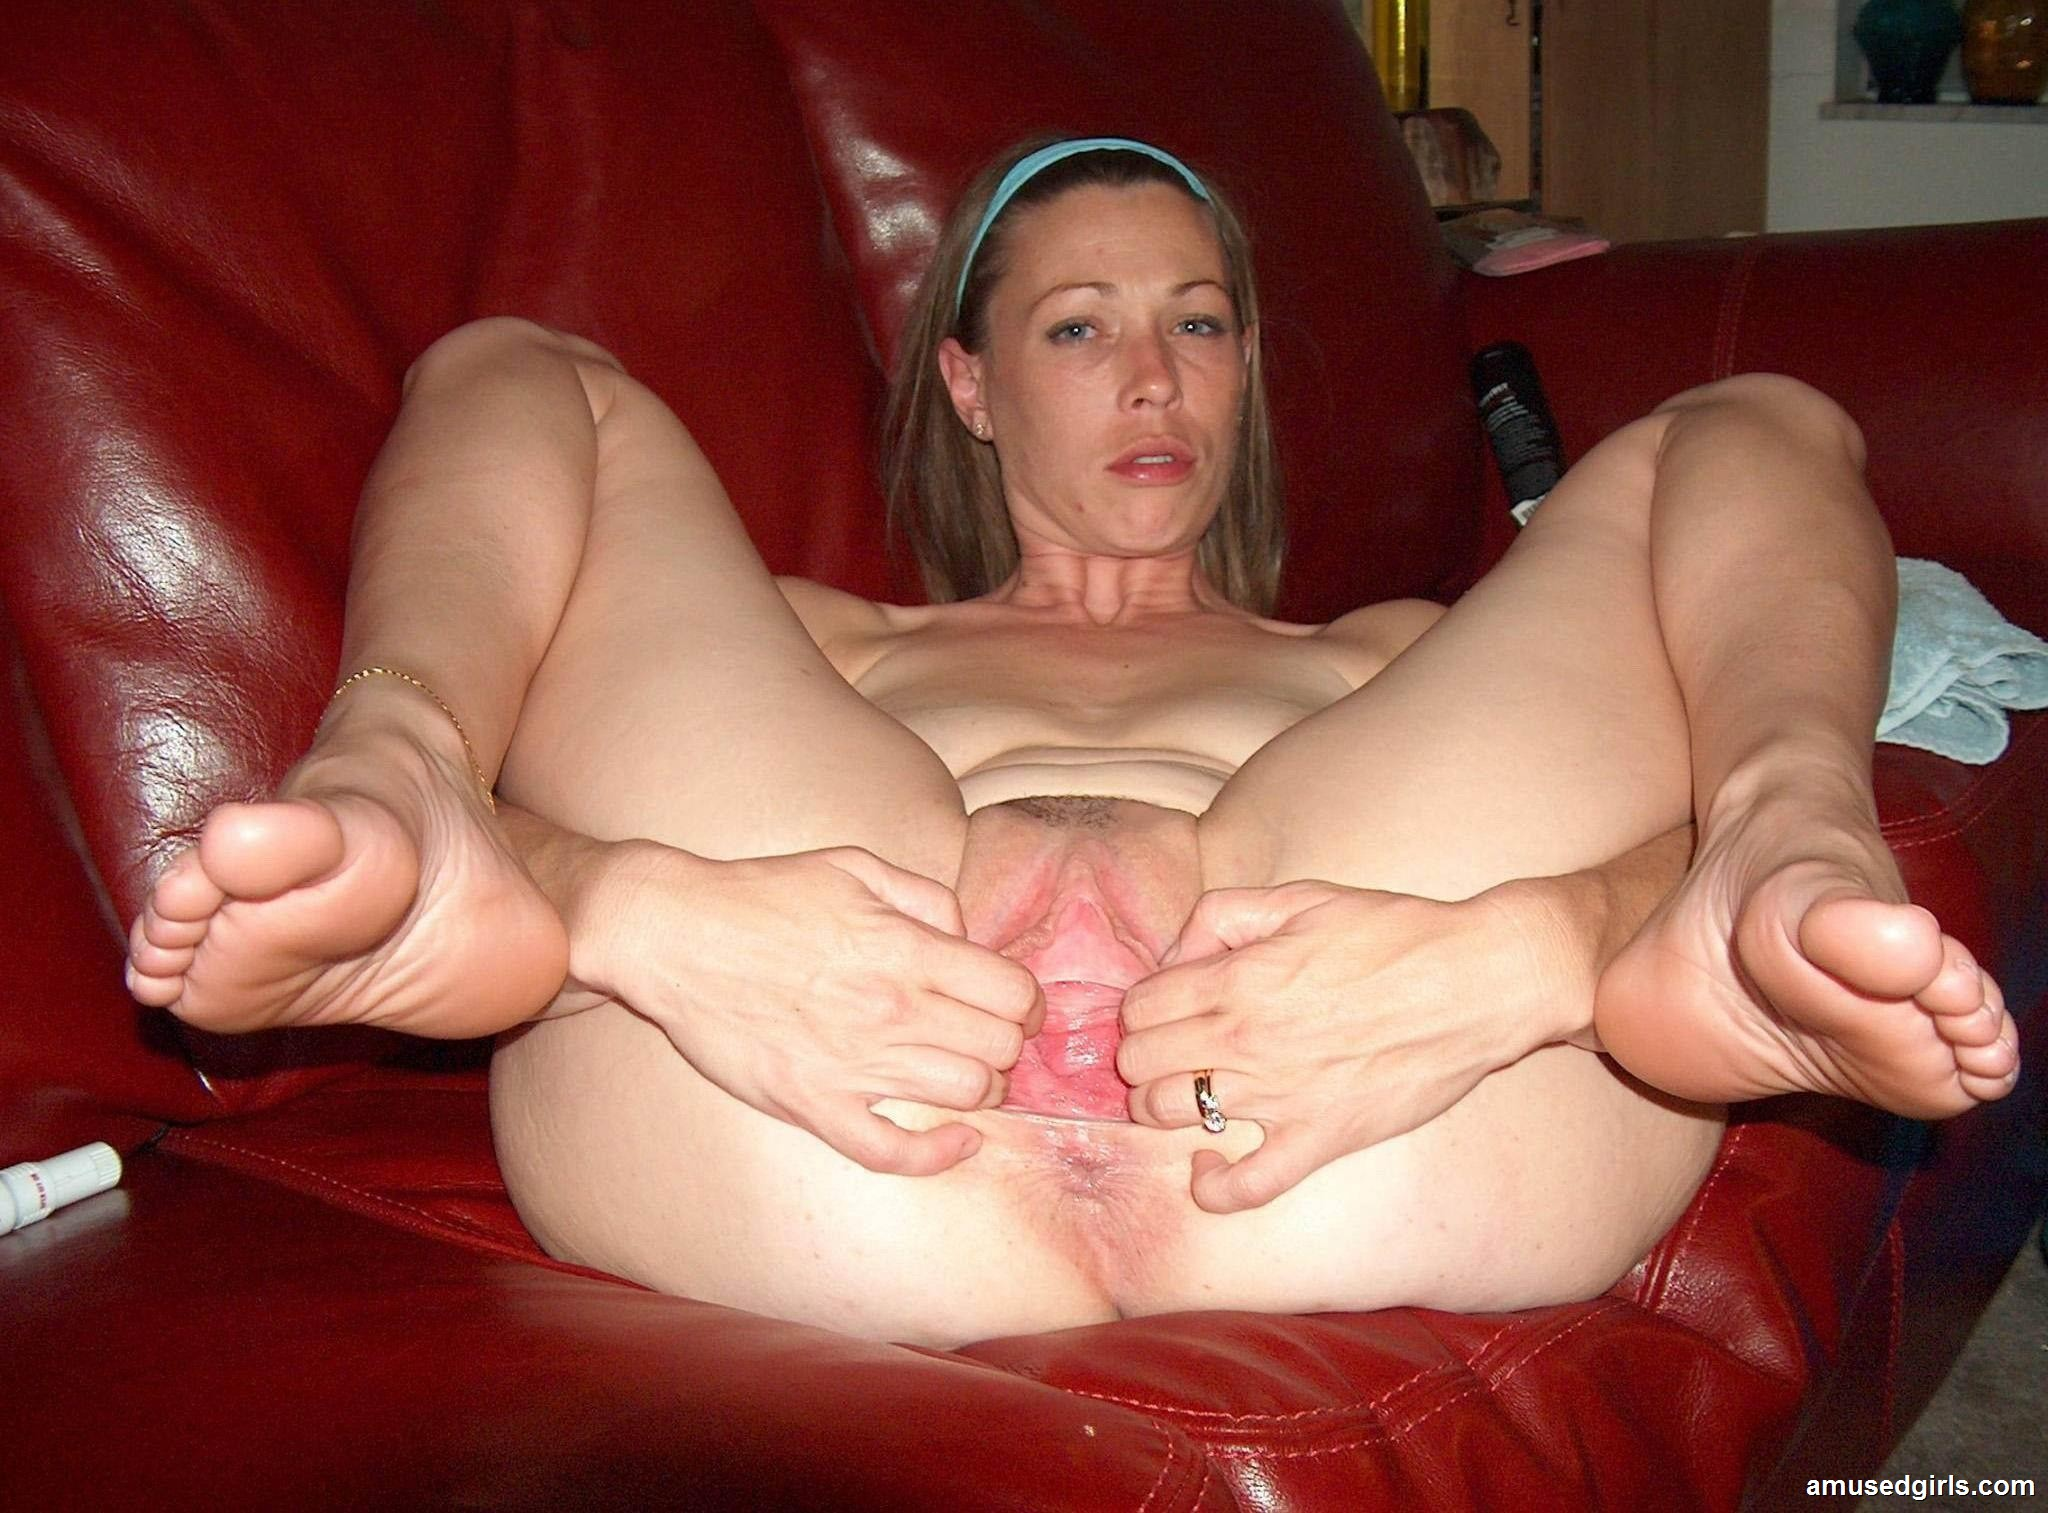 MATURE MOTHER FUCKING PORN TUBE